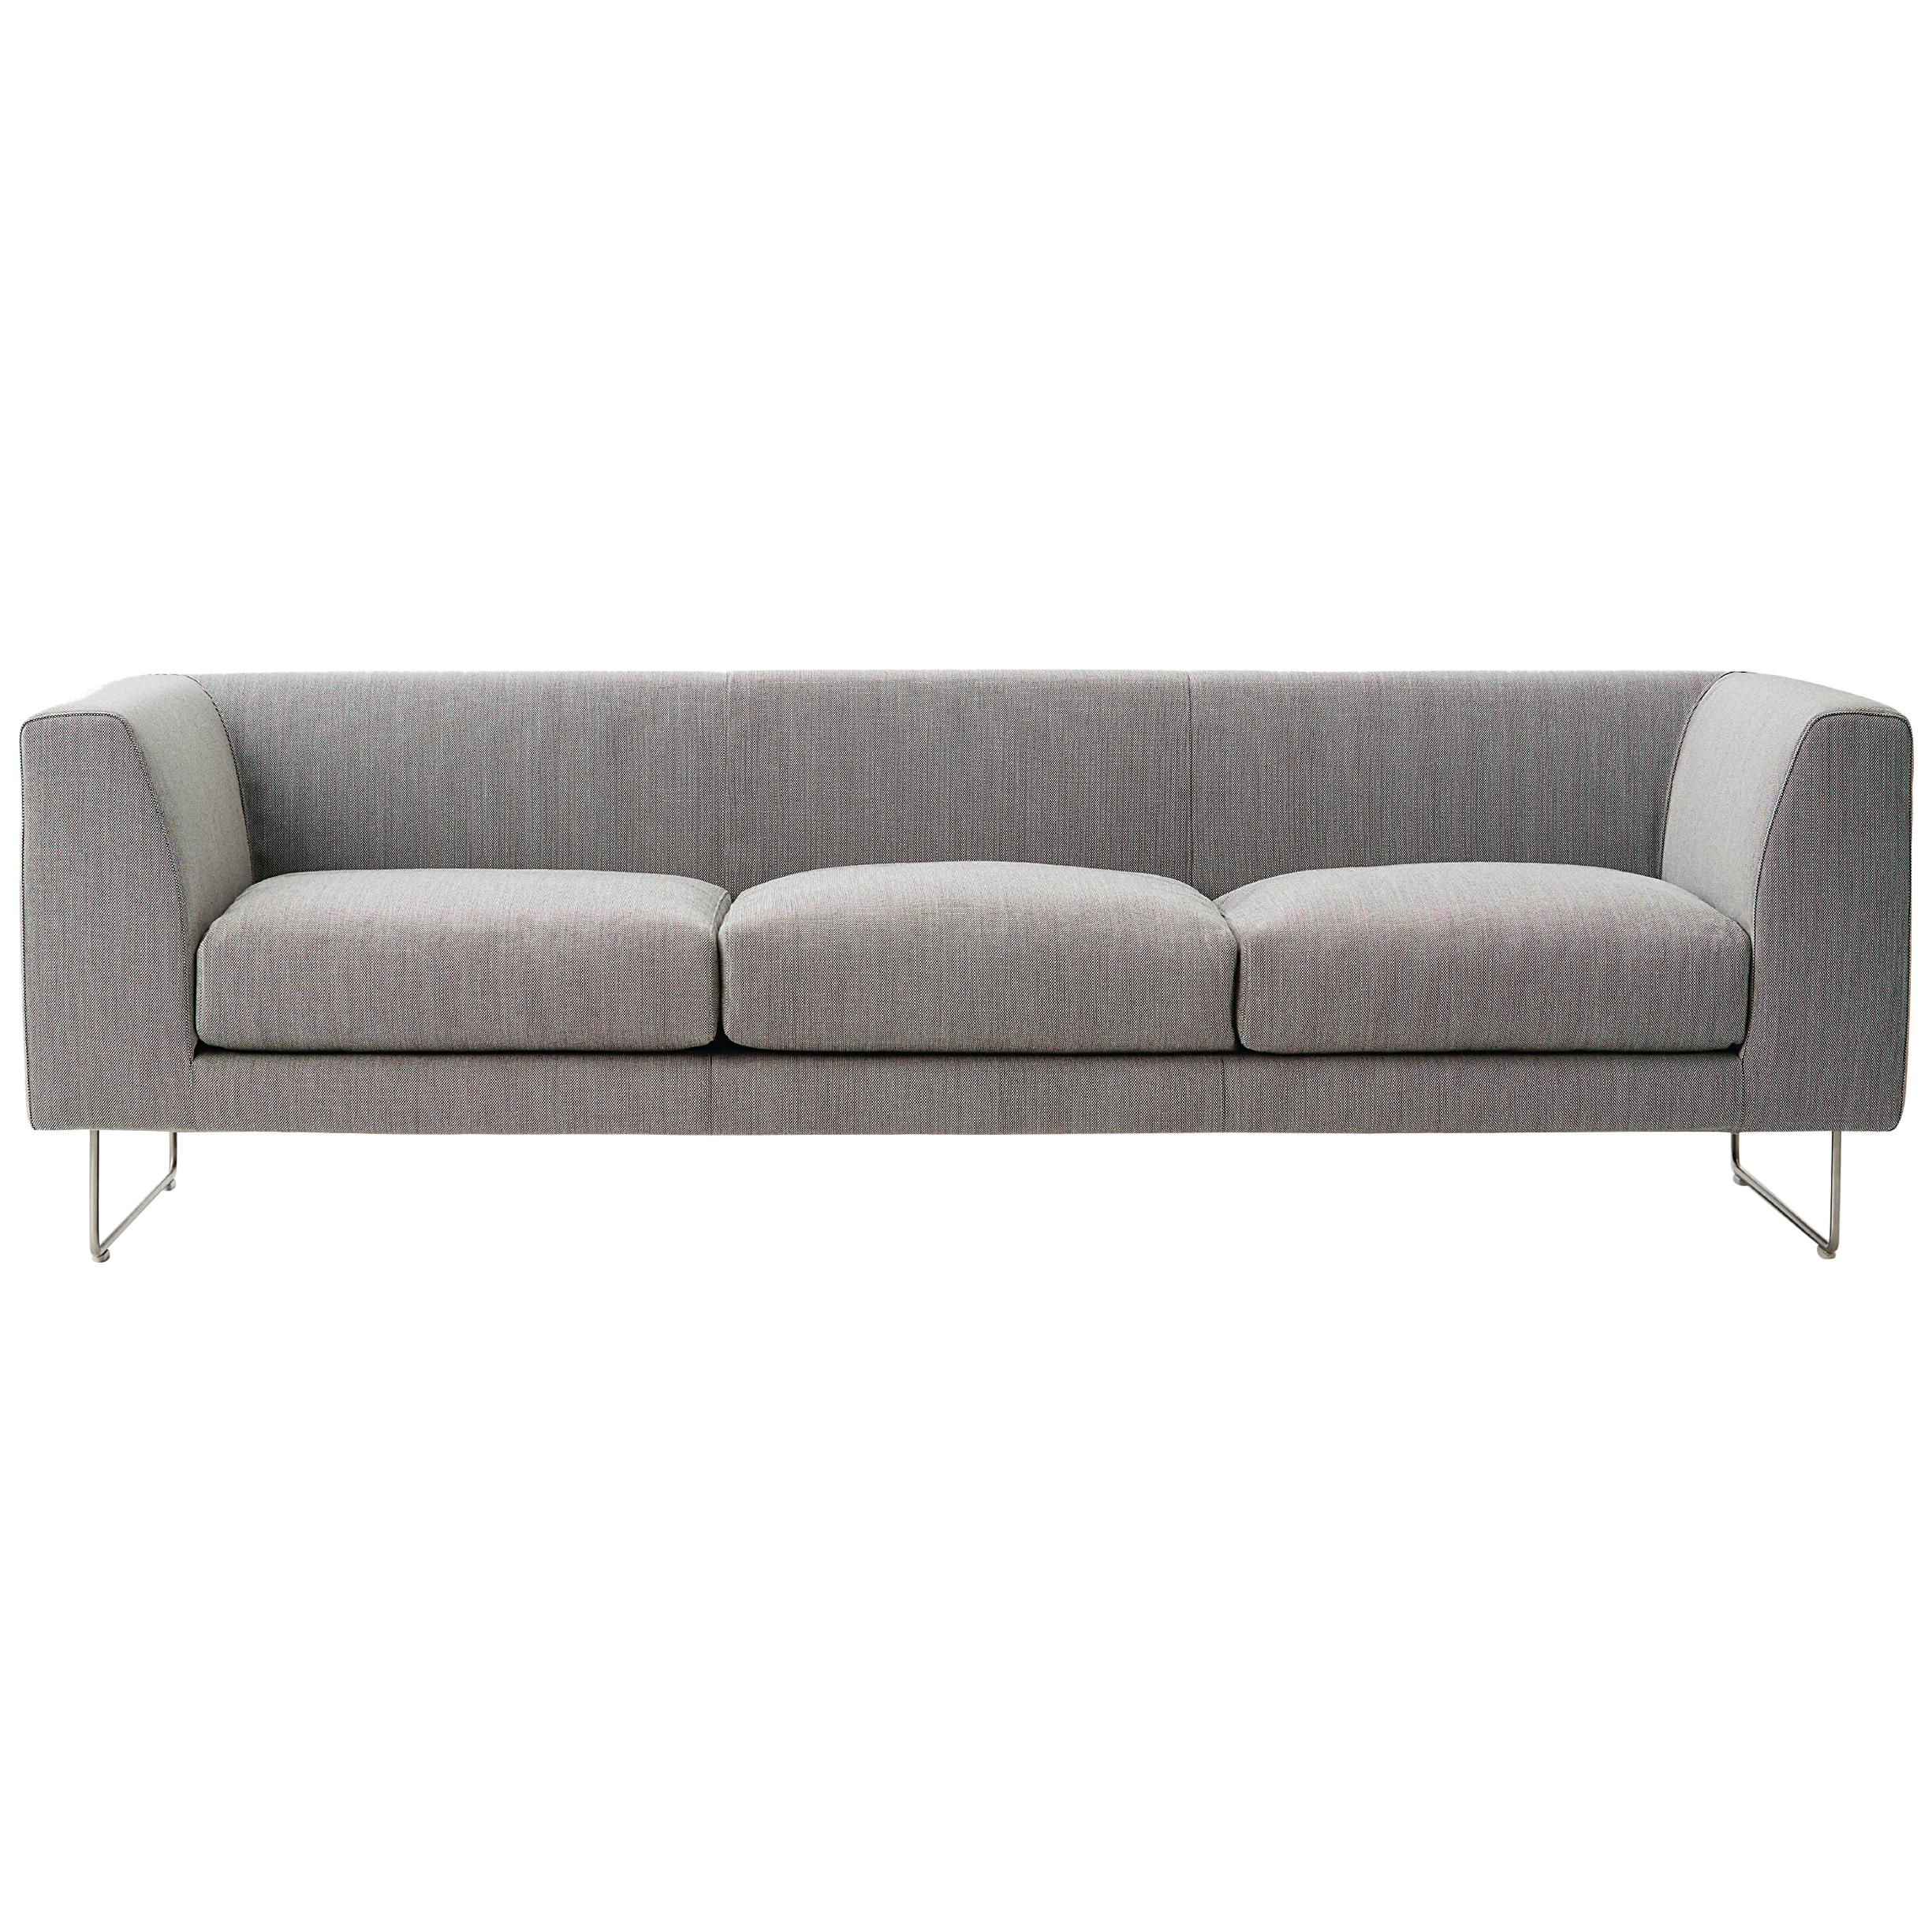 Cappellini Elan Three-Seat Sofa with Fabric or Leather by Jasper Morrison